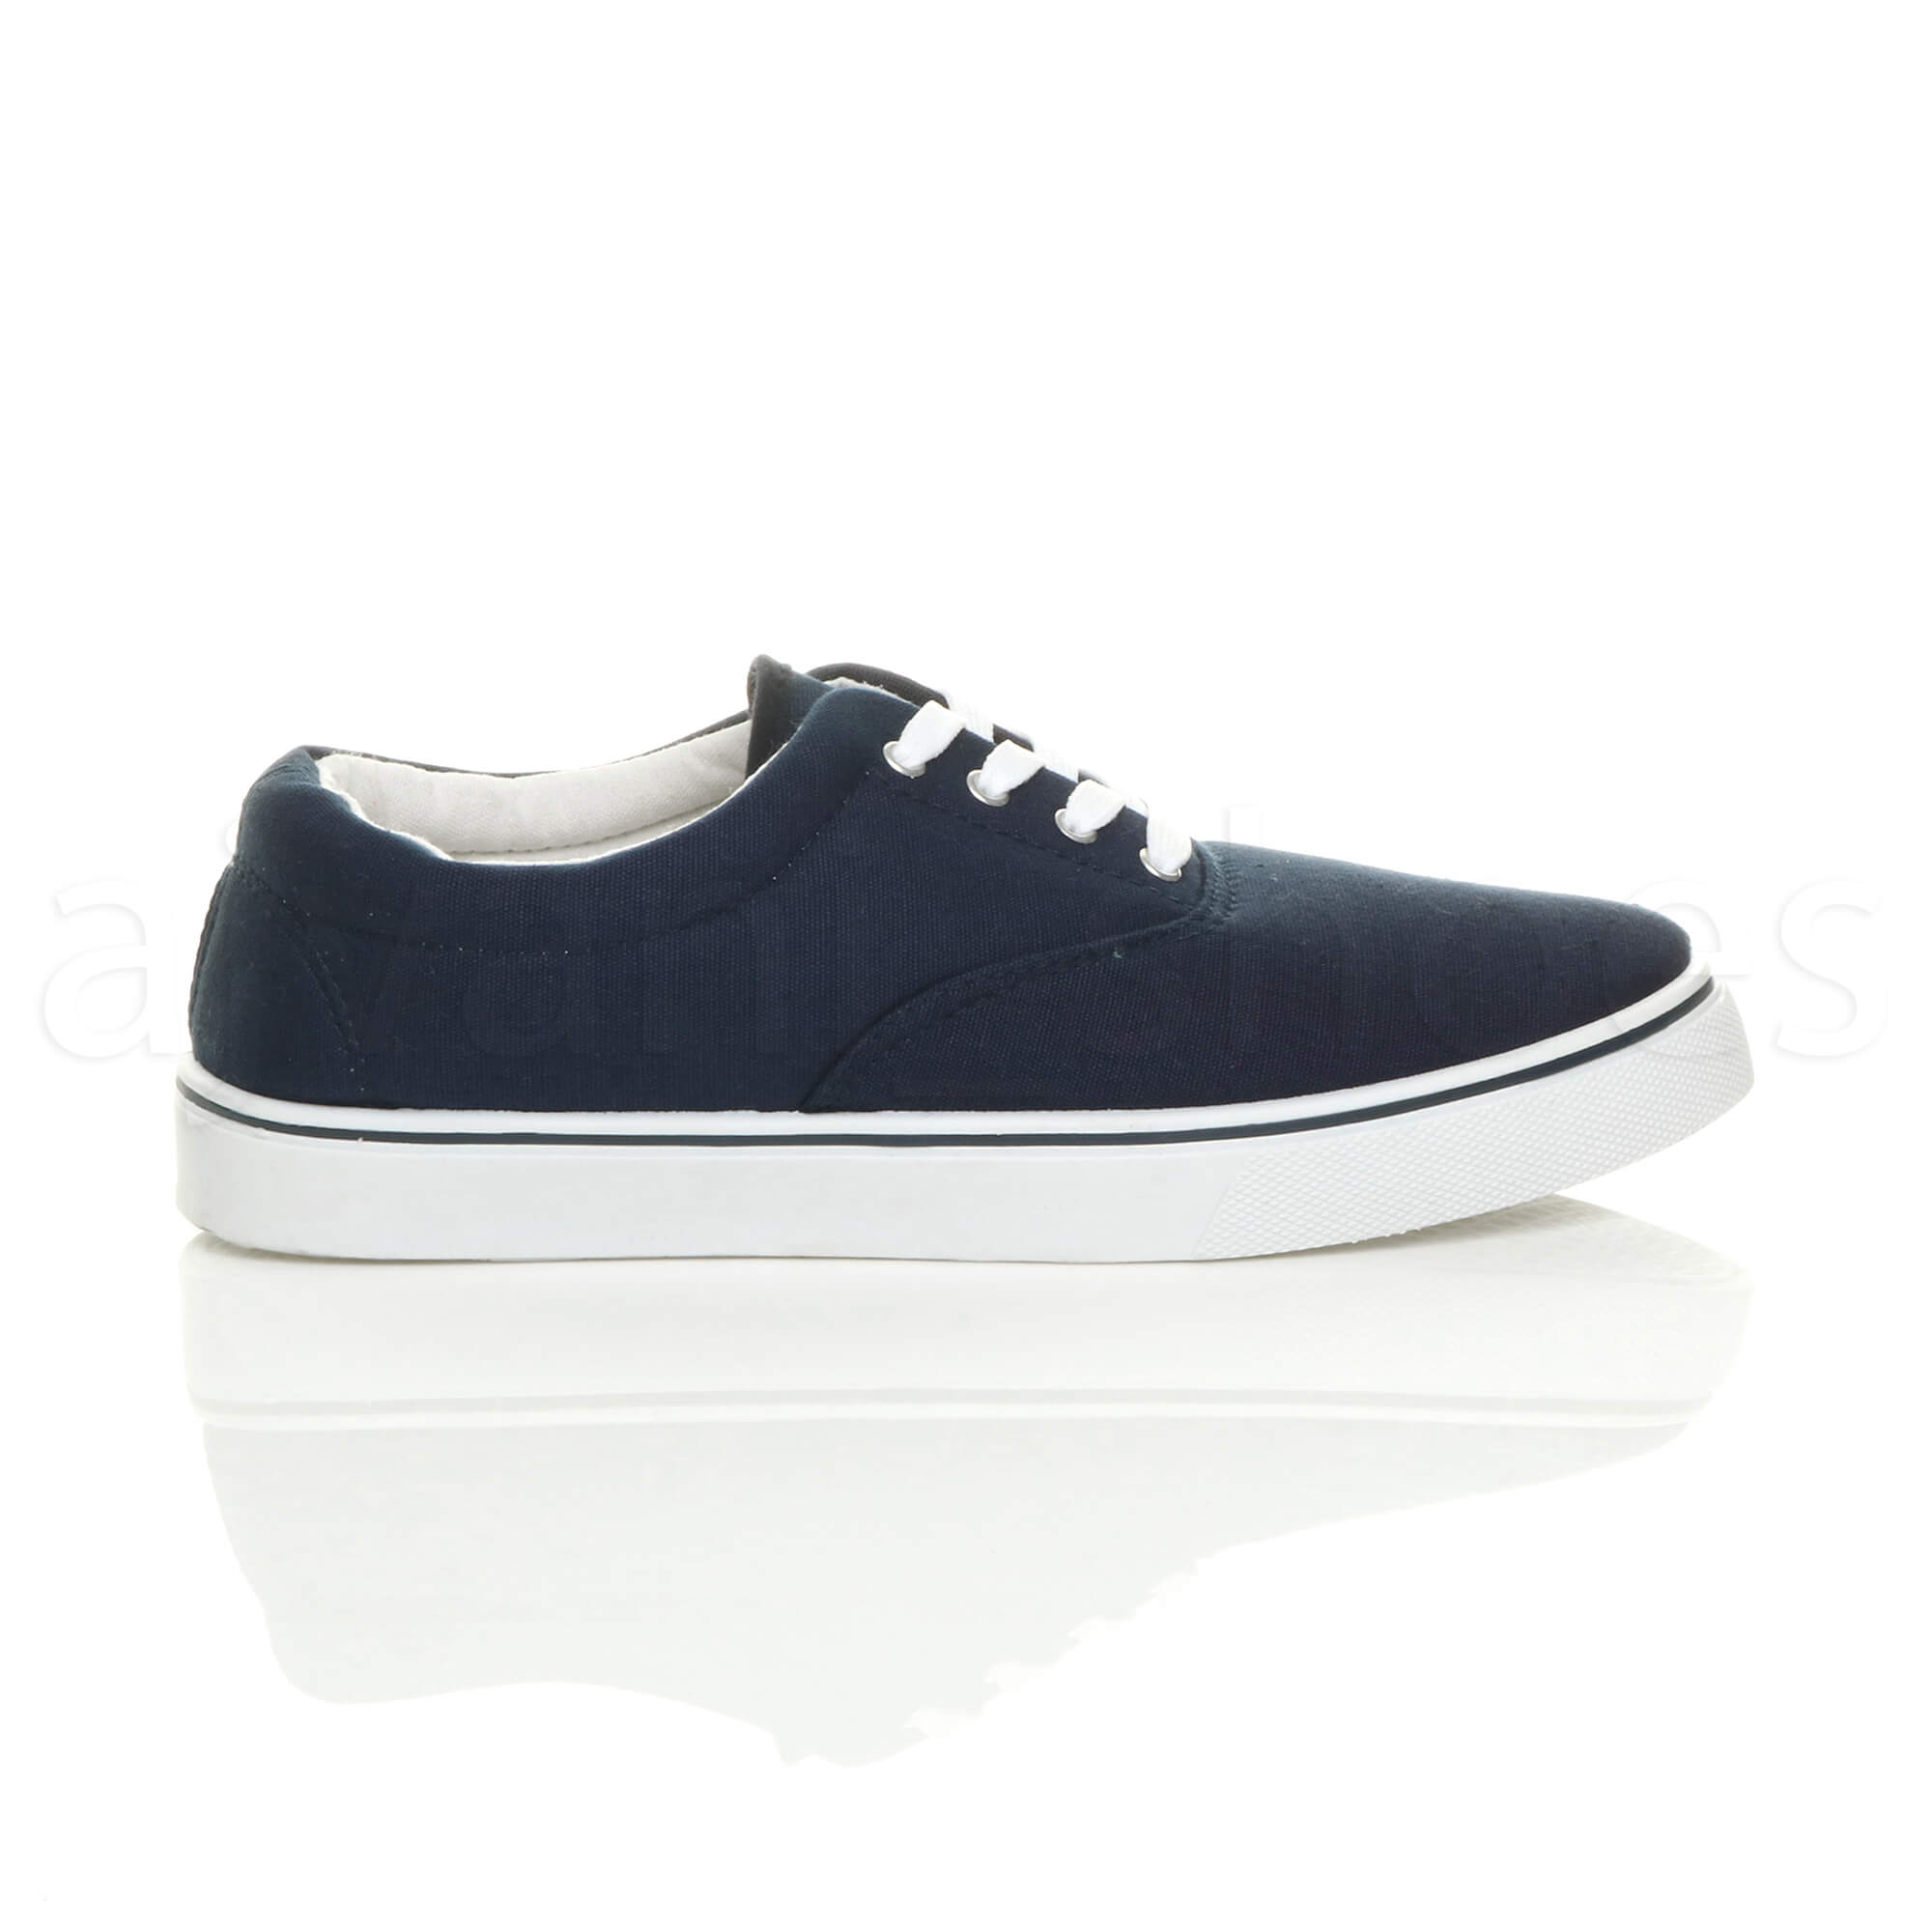 MENS-CANVAS-CASUAL-TRAINERS-PLIMSOLES-PLIMSOLLS-SHOES-LACE-UP-PUMPS-SIZE thumbnail 8